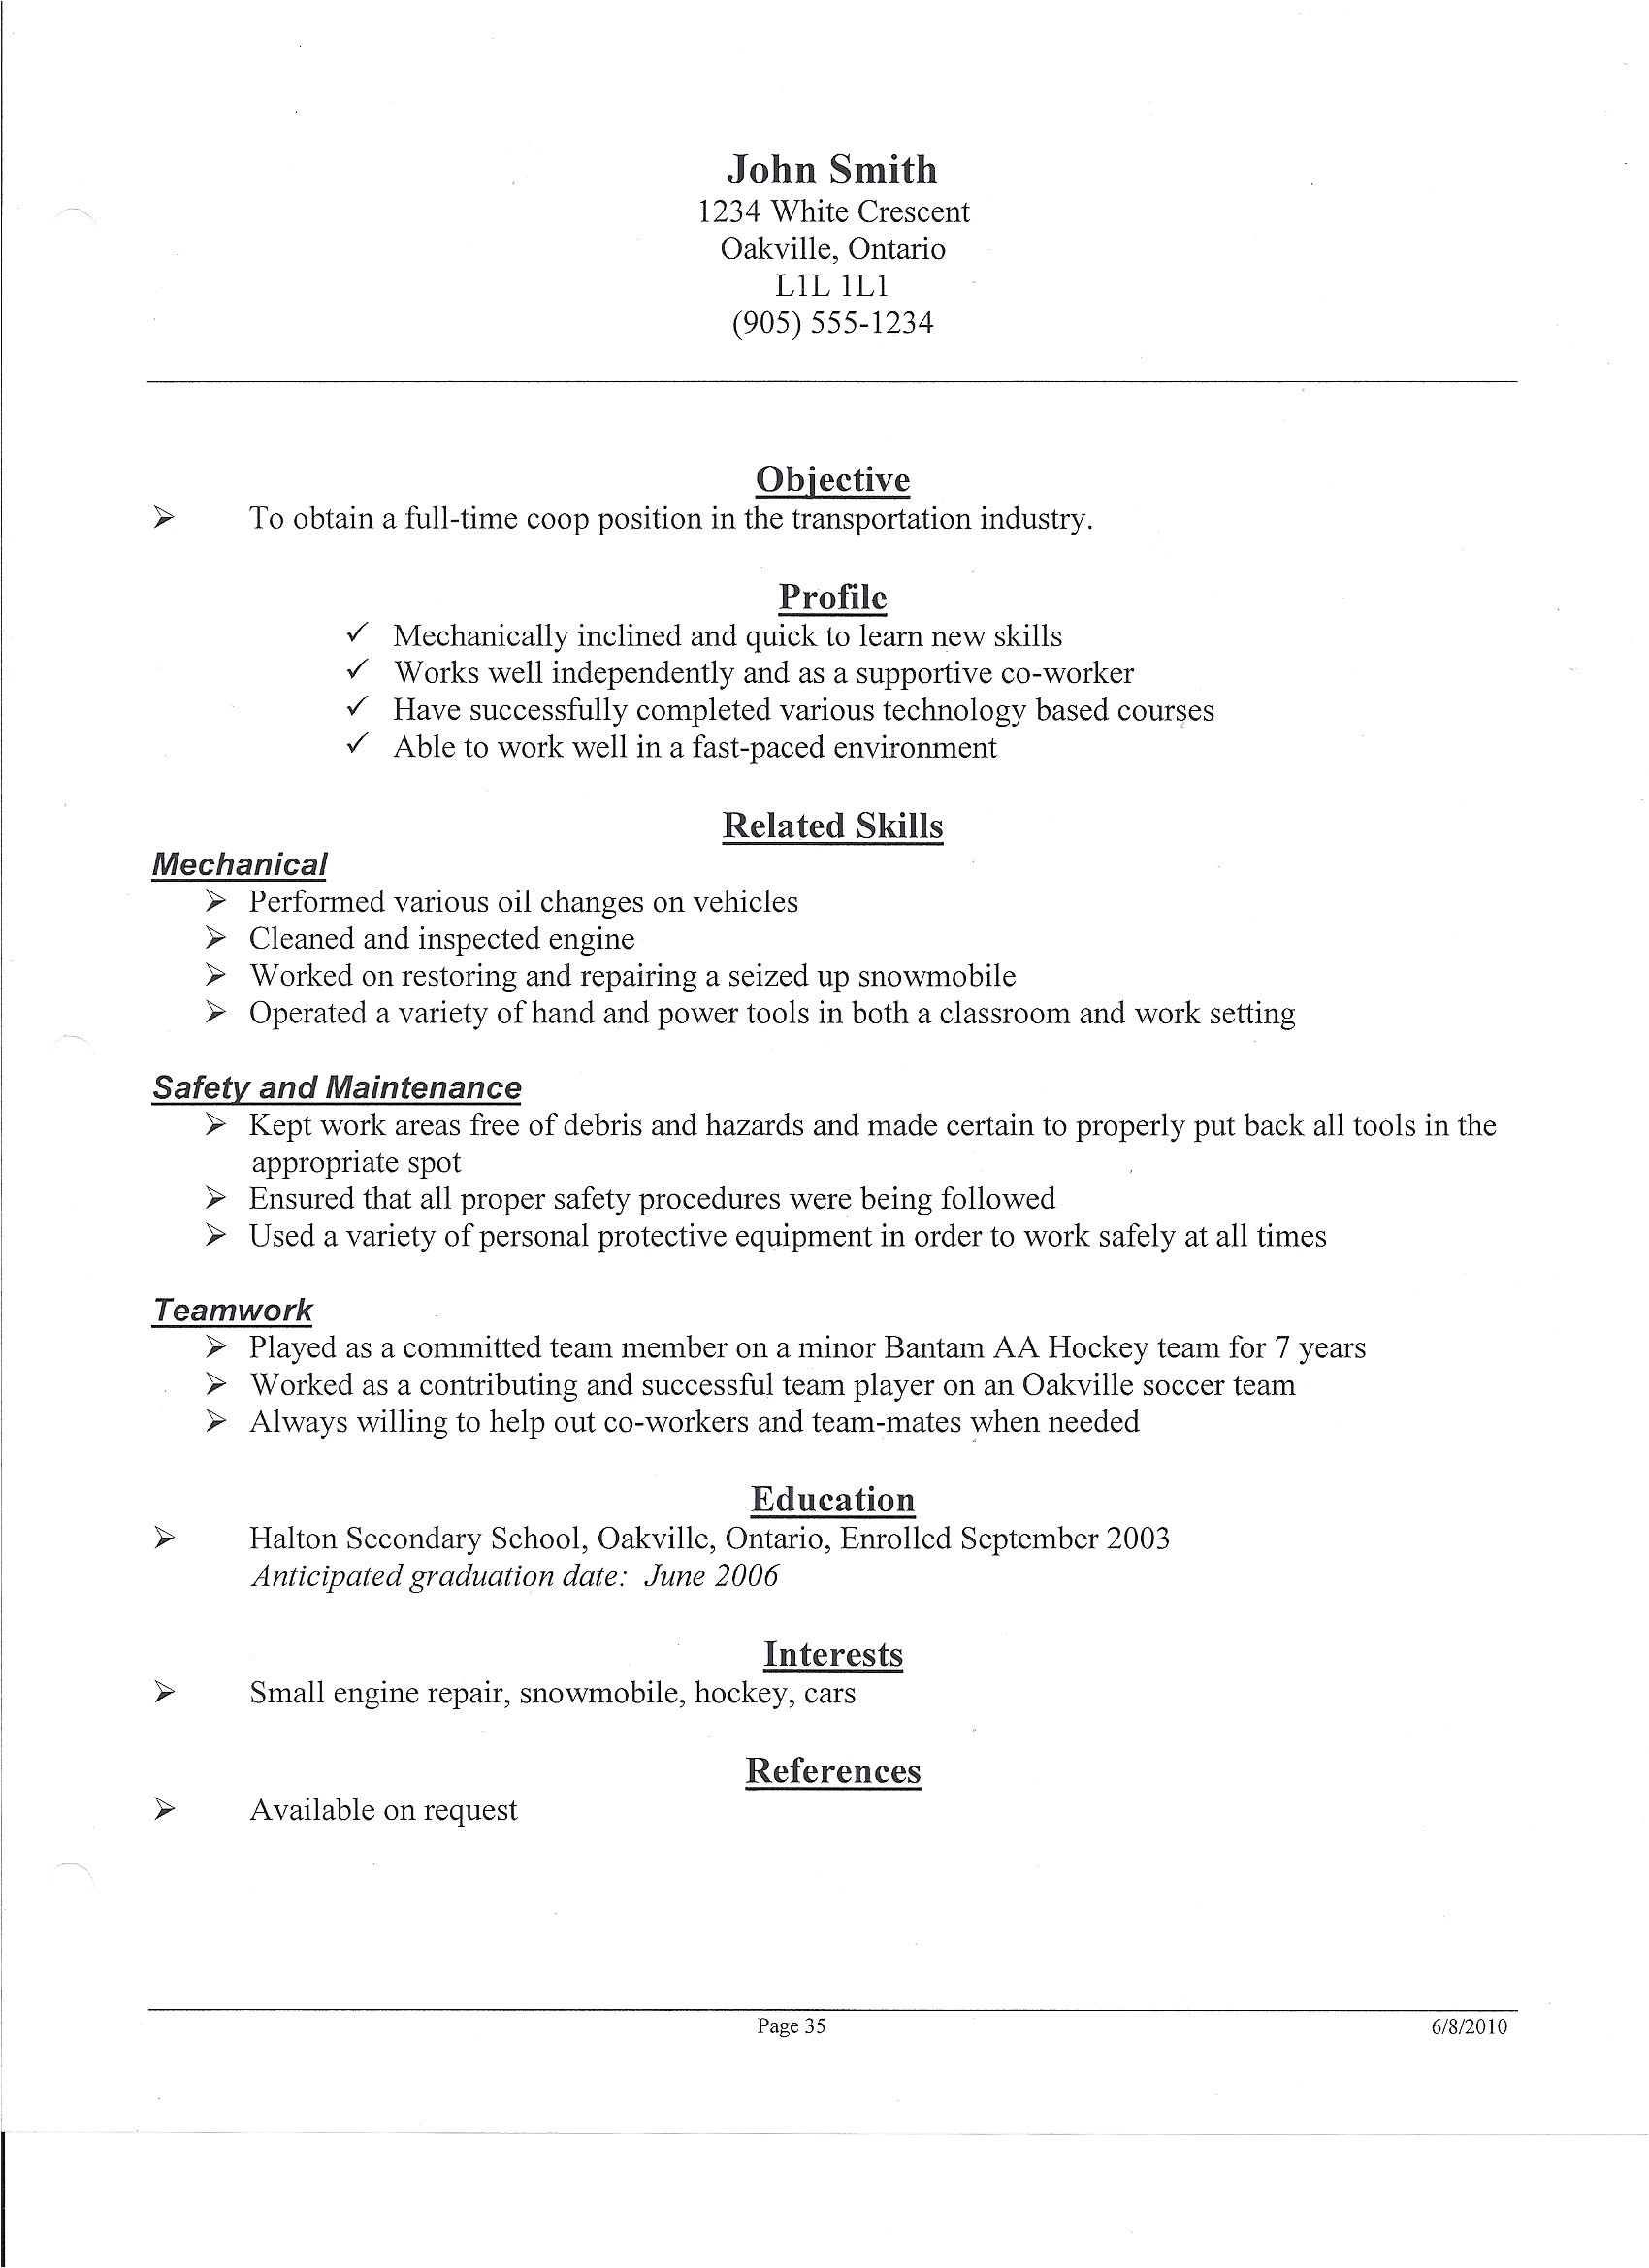 Resume For Tim Hortons Job Sample Tim Hortons Resume Best